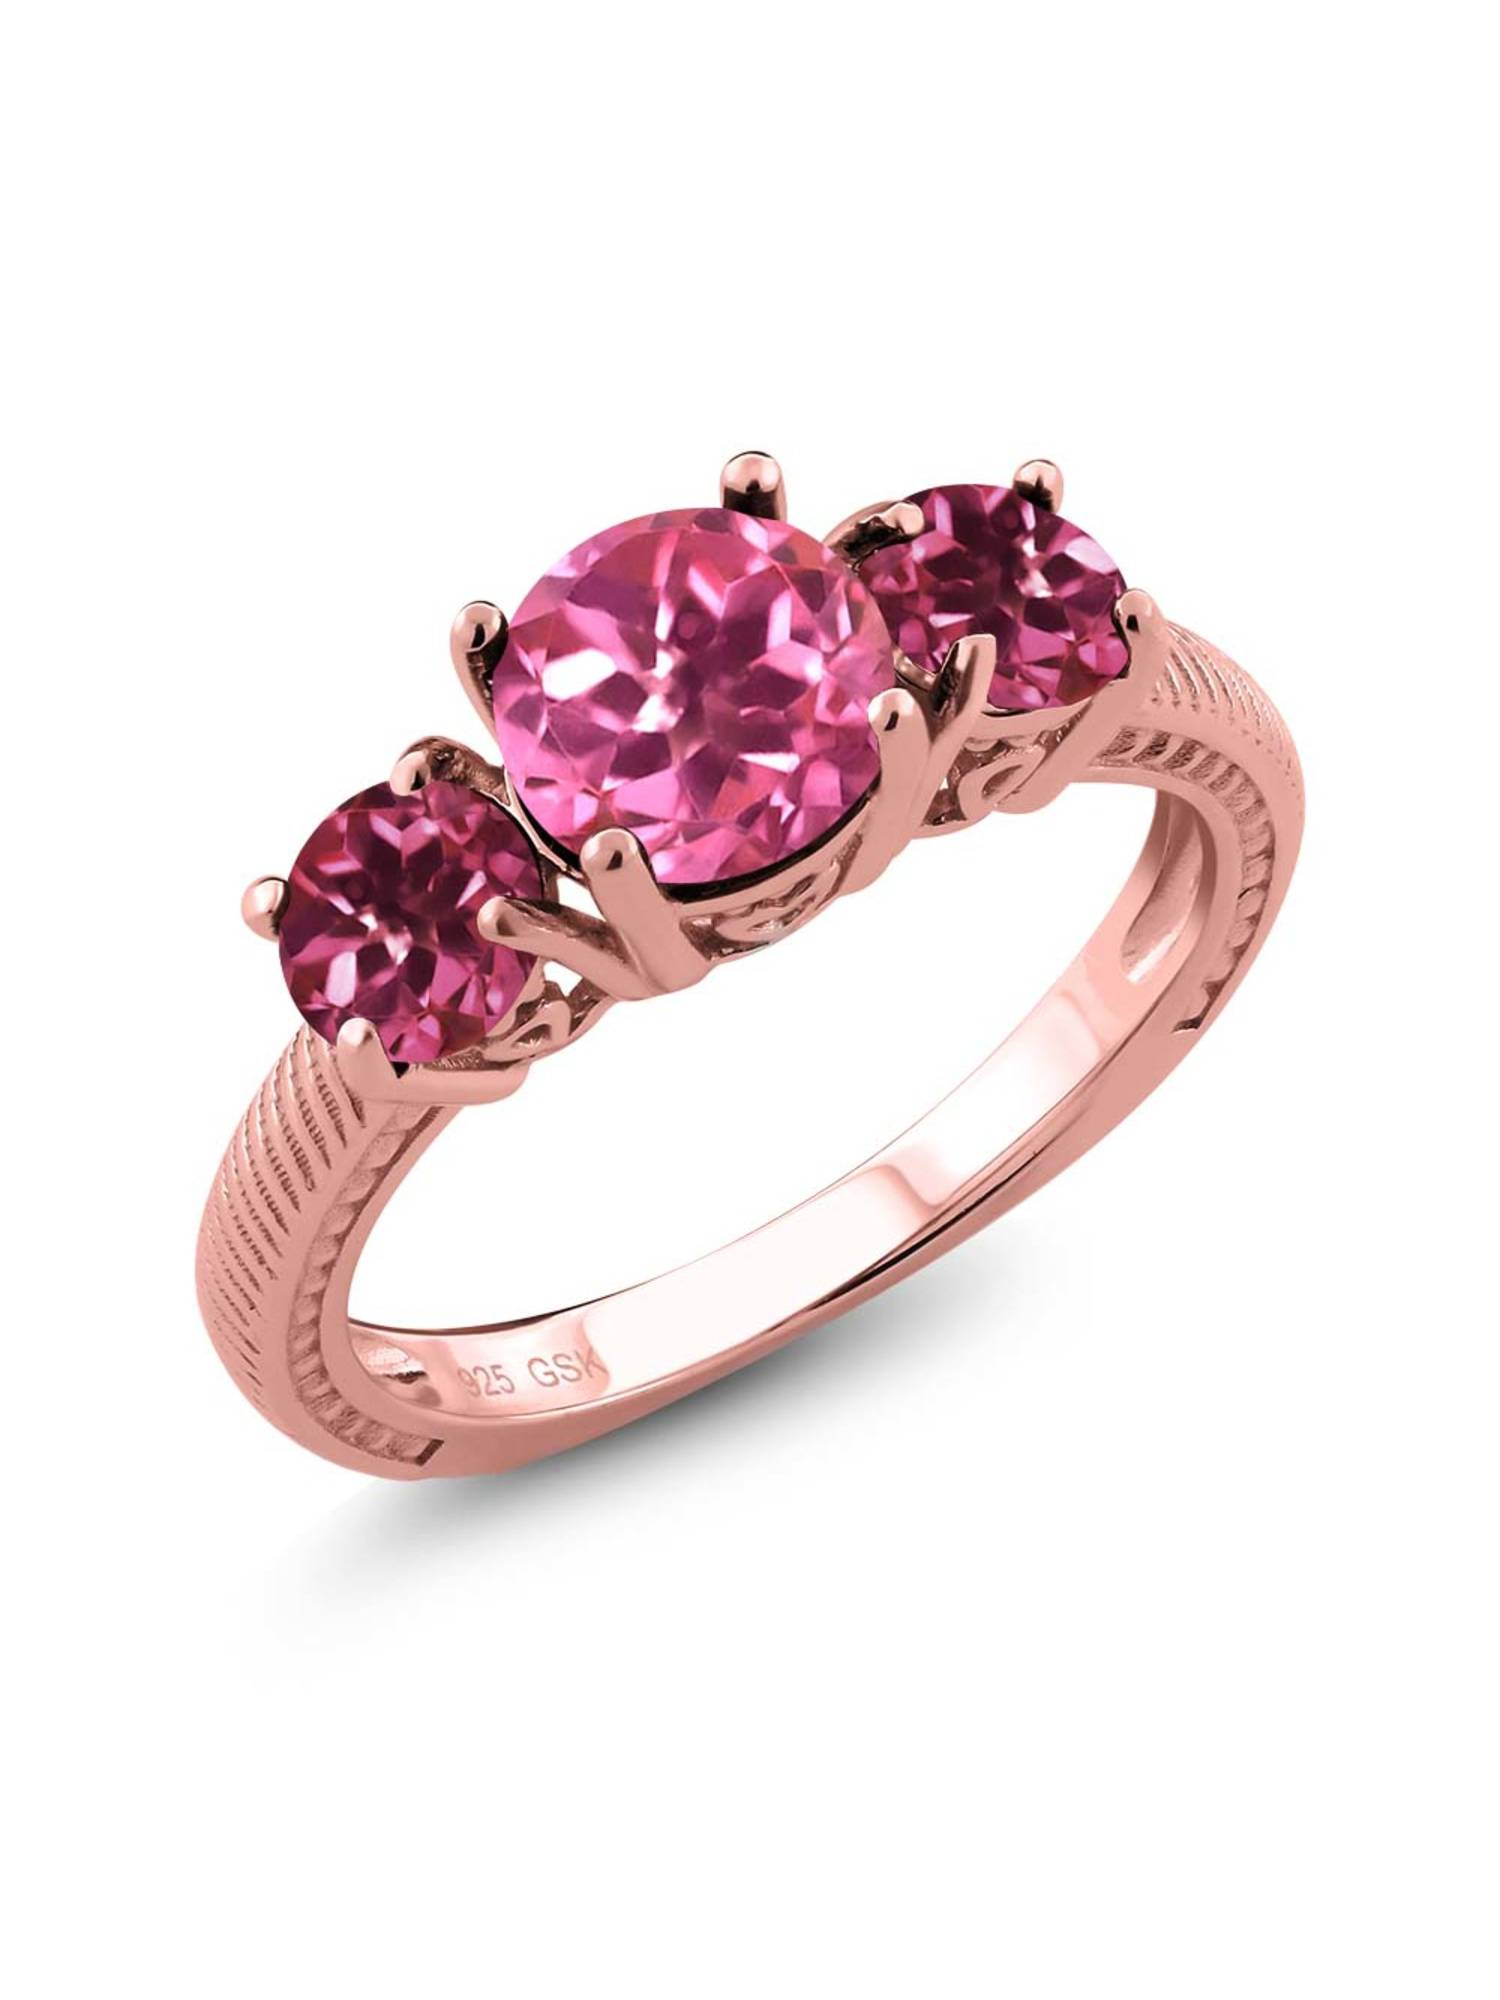 2.30 Ct Round Pink Mystic Topaz Pink Tourmaline 18K Rose Gold Plated Silver 3 Stone Ring by